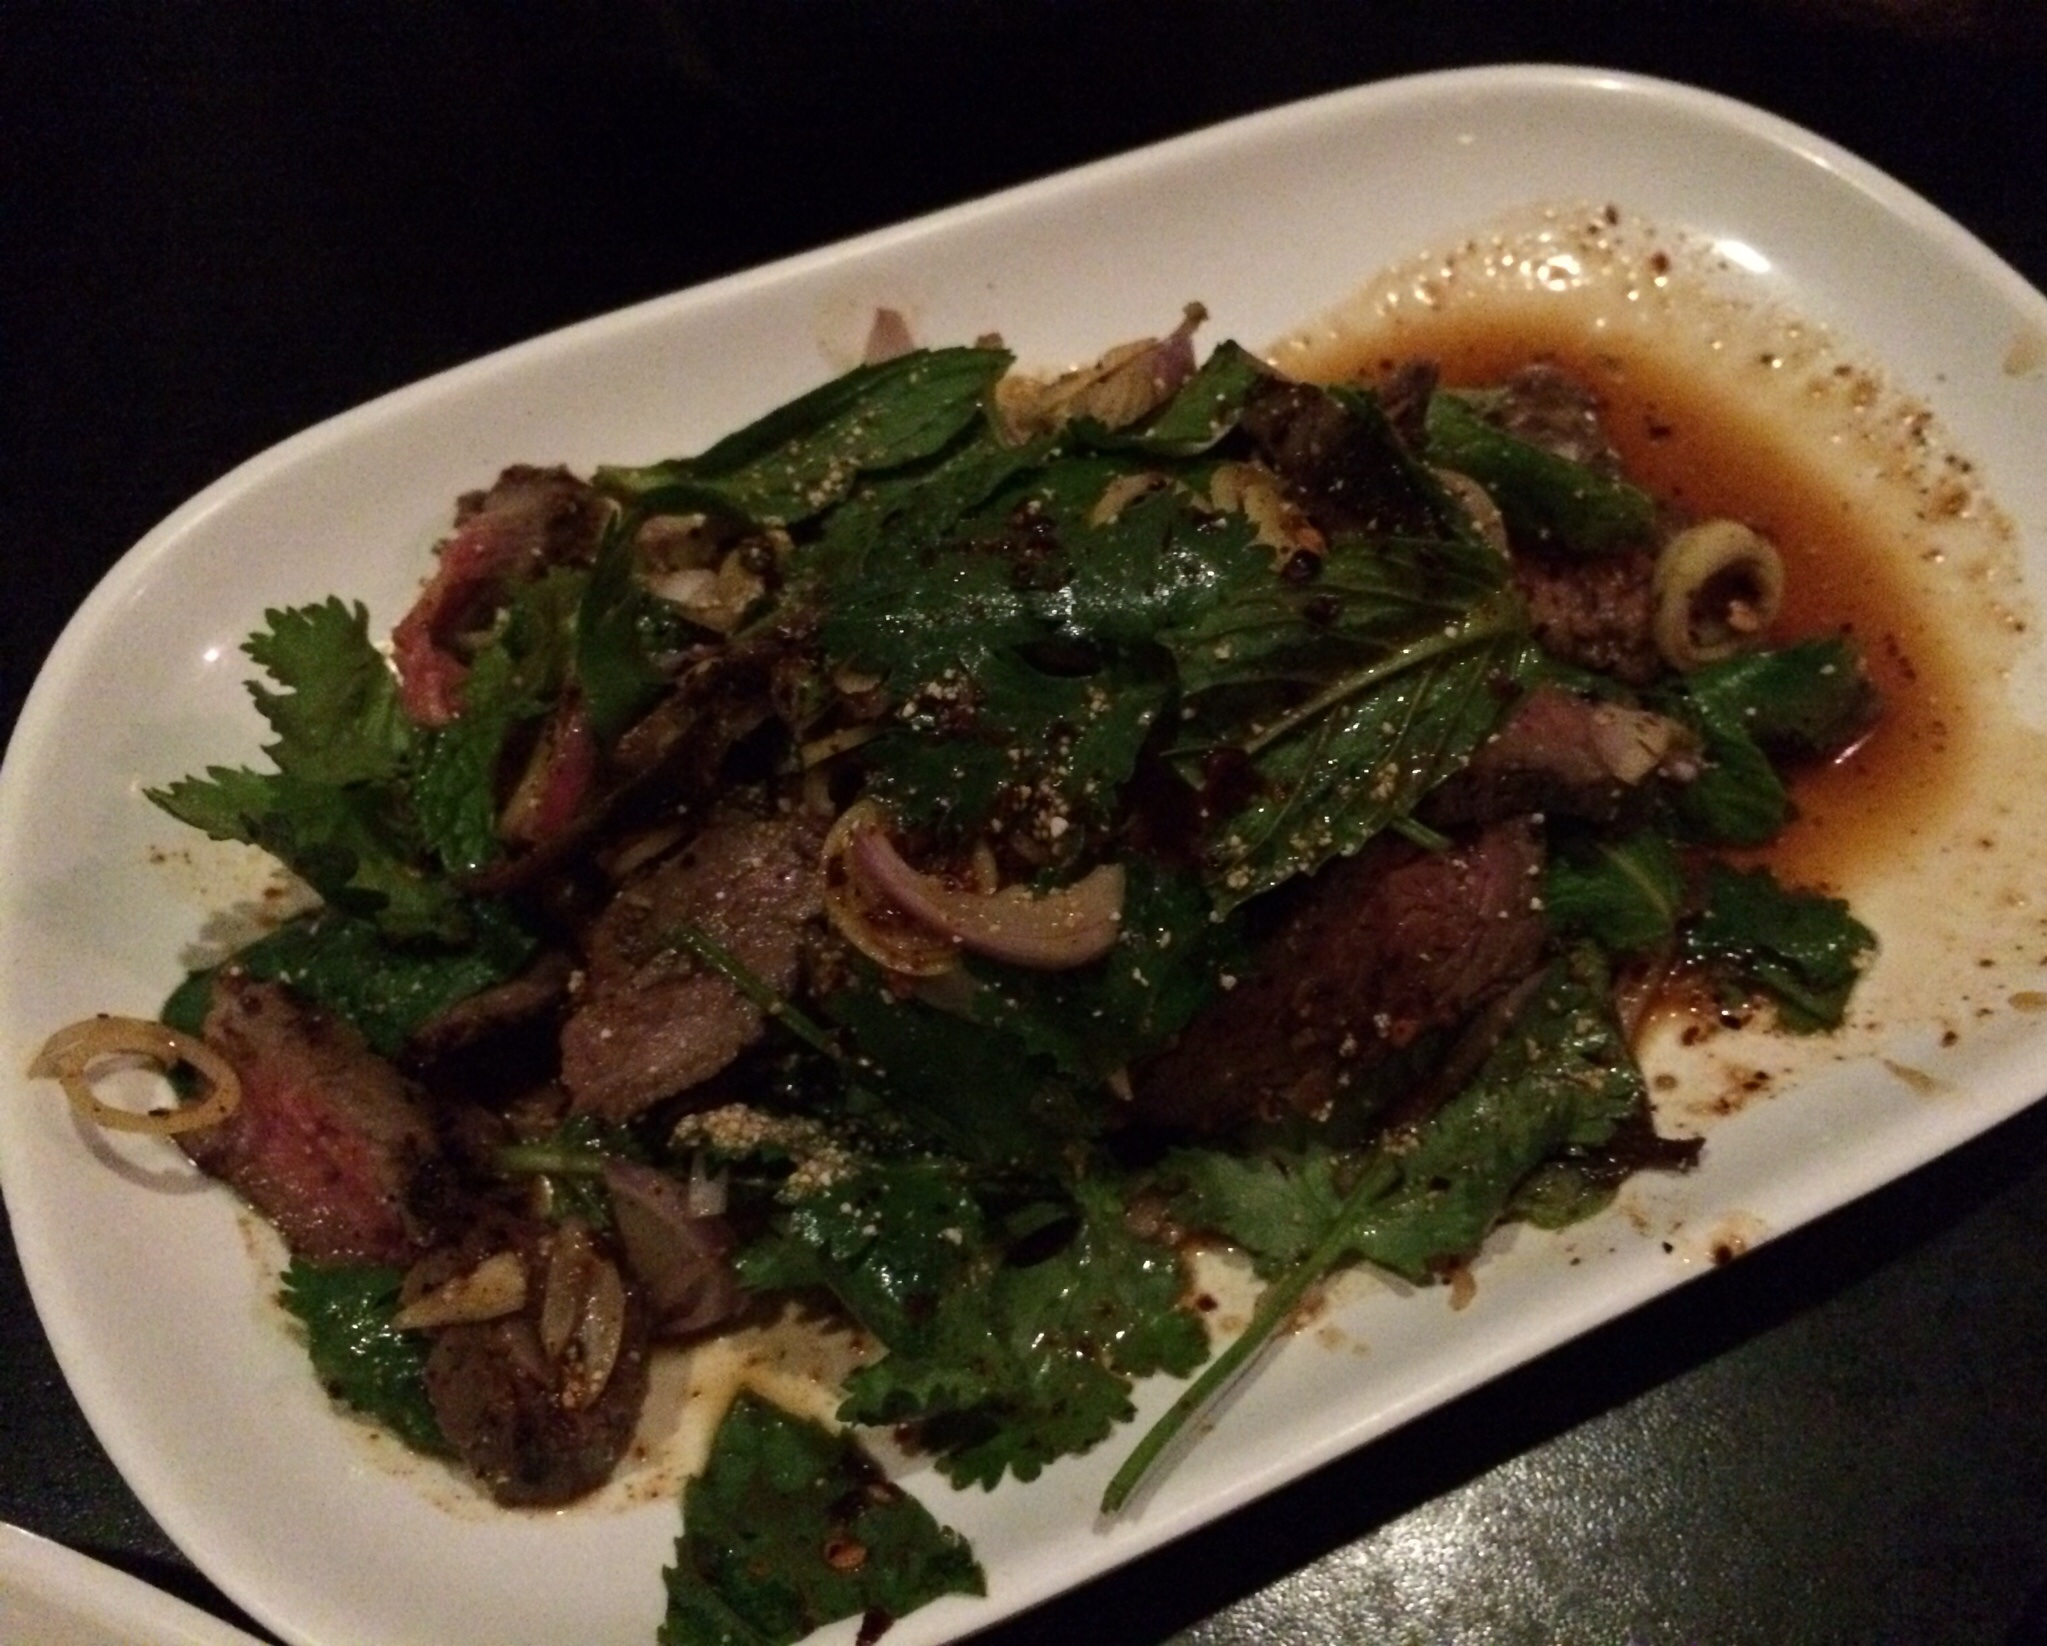 NEUA NAAM TOK - flank steak salad with fish sauce, lime, and chili powder dressing, shallots, lemongrass, mint, cilantro, and toasted rice powder.